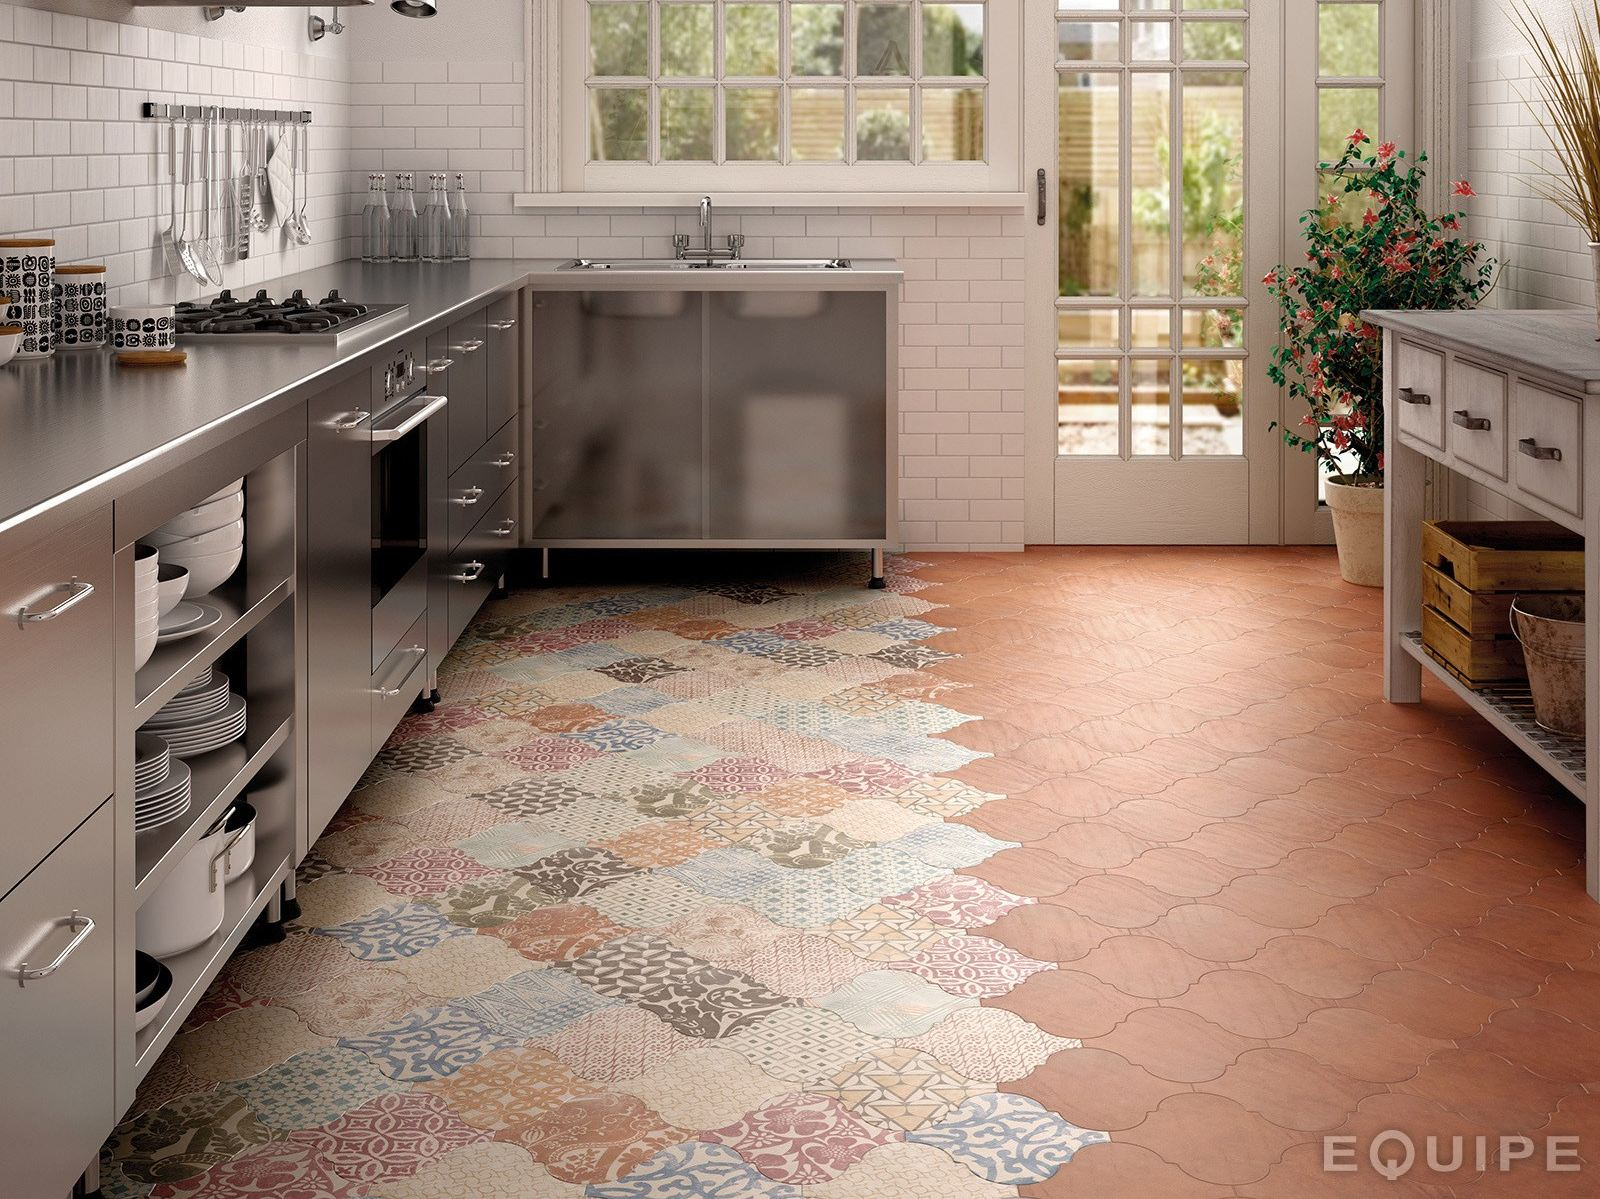 For Kitchen Floor Tiles Curvytile Wall Floor Tiles By Equipe Ceramicas